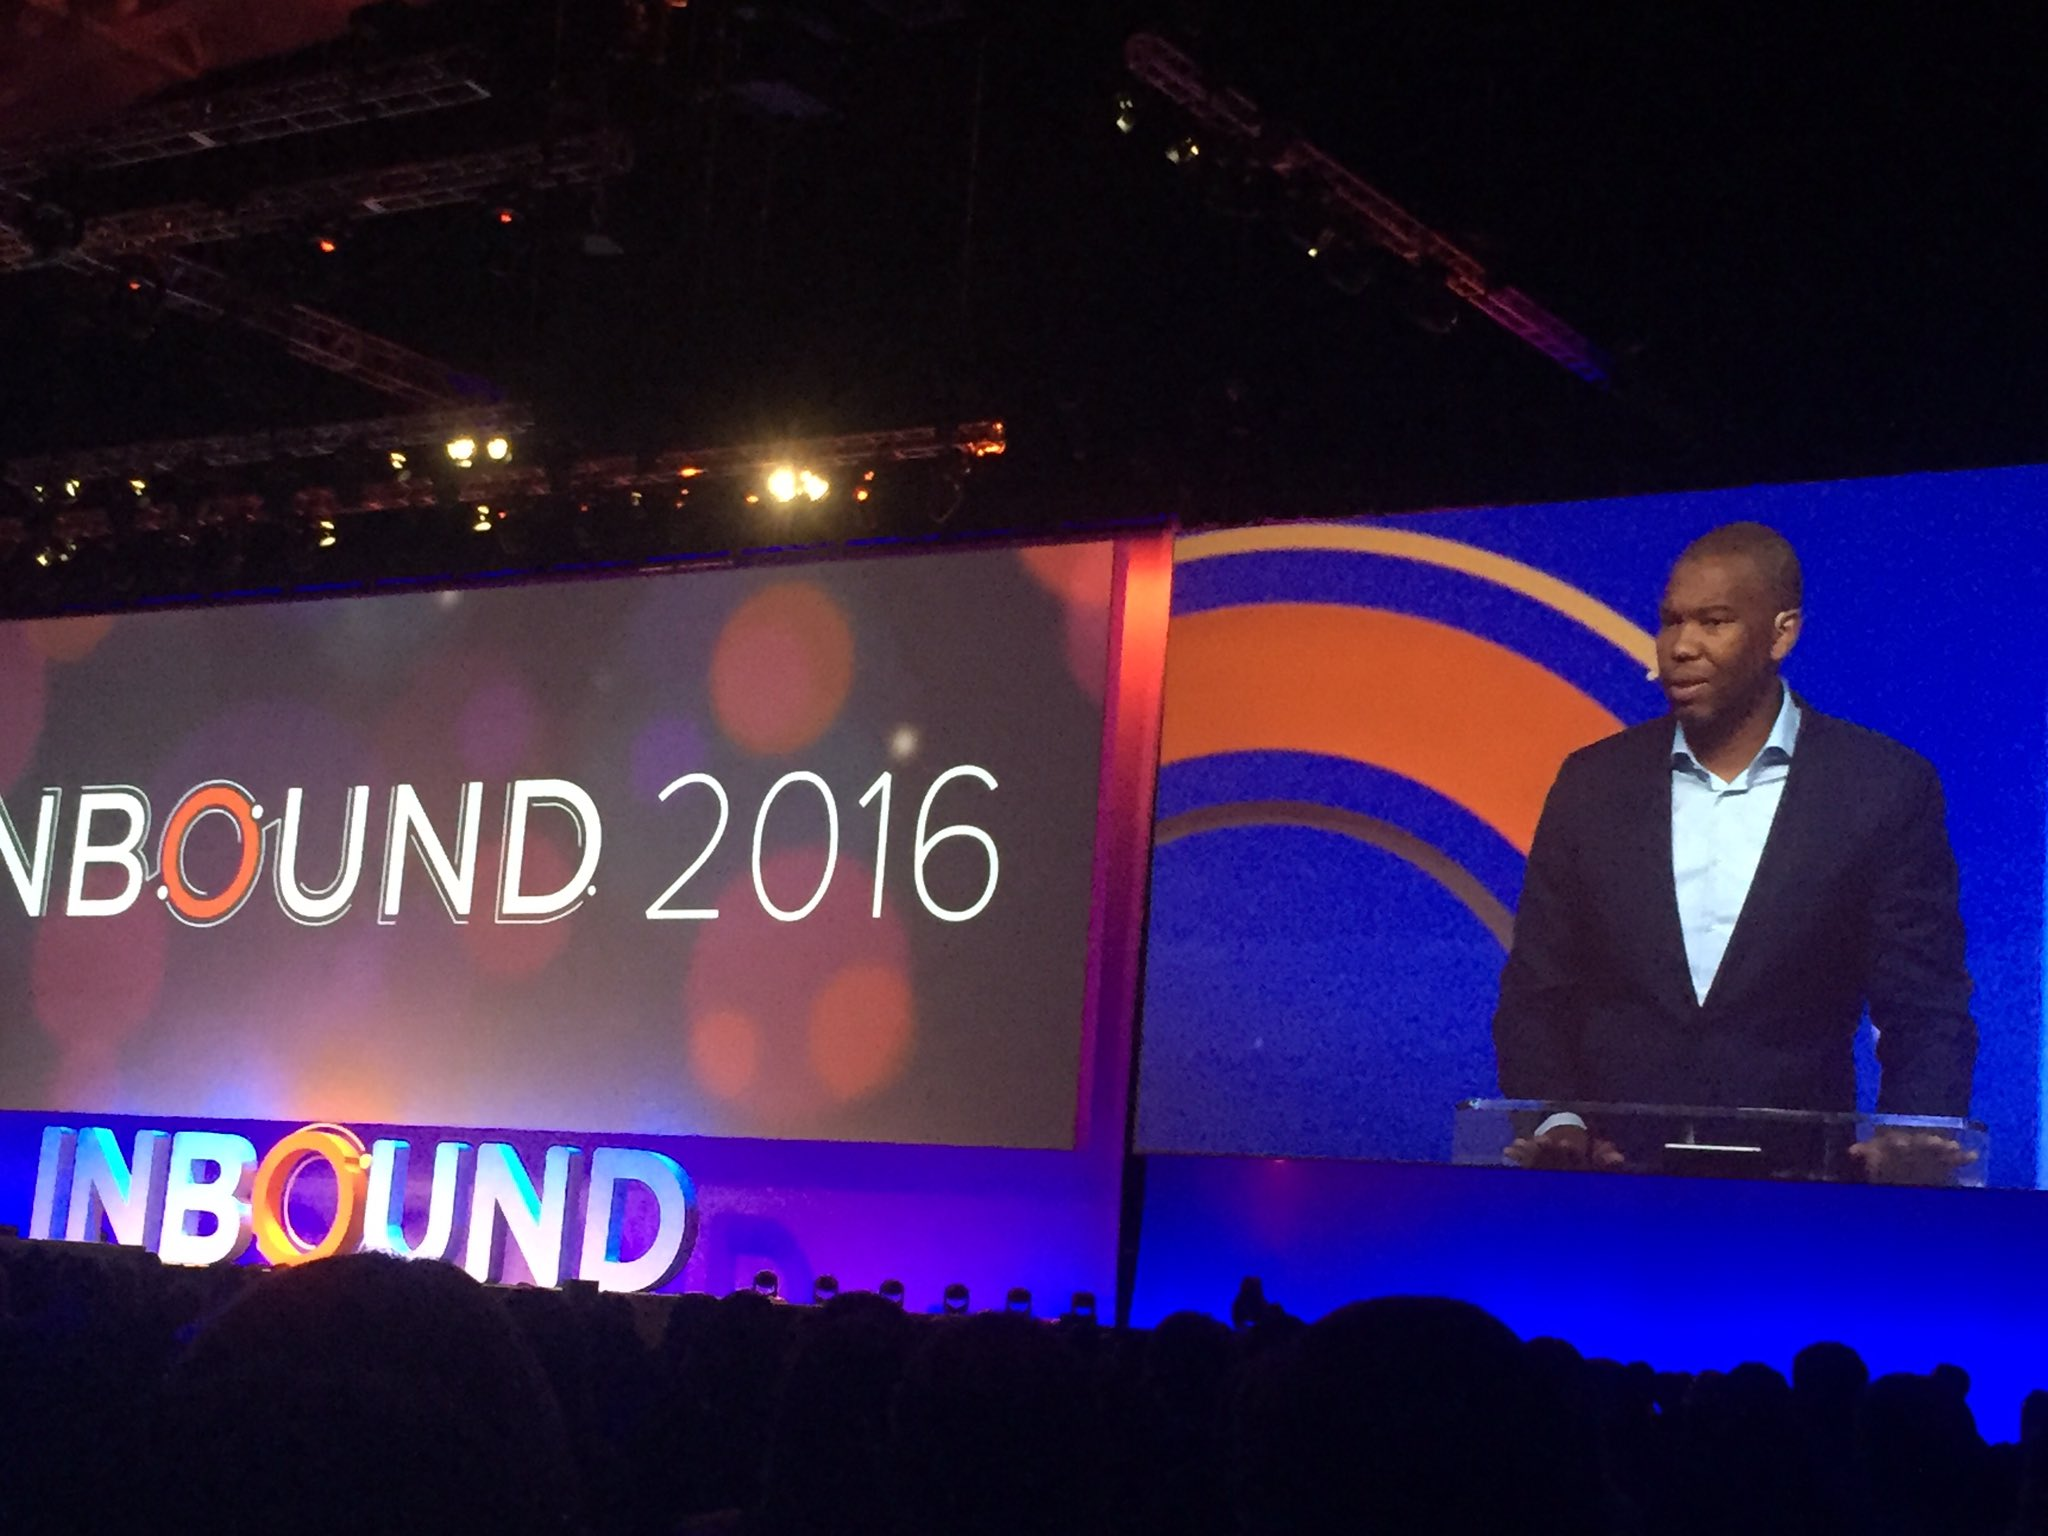 Brave talk by @tanehisicoates at #INBOUND16. Proud that this morning isn't just about marketing. Thank you @hubspot! https://t.co/JBEfXX3tkw